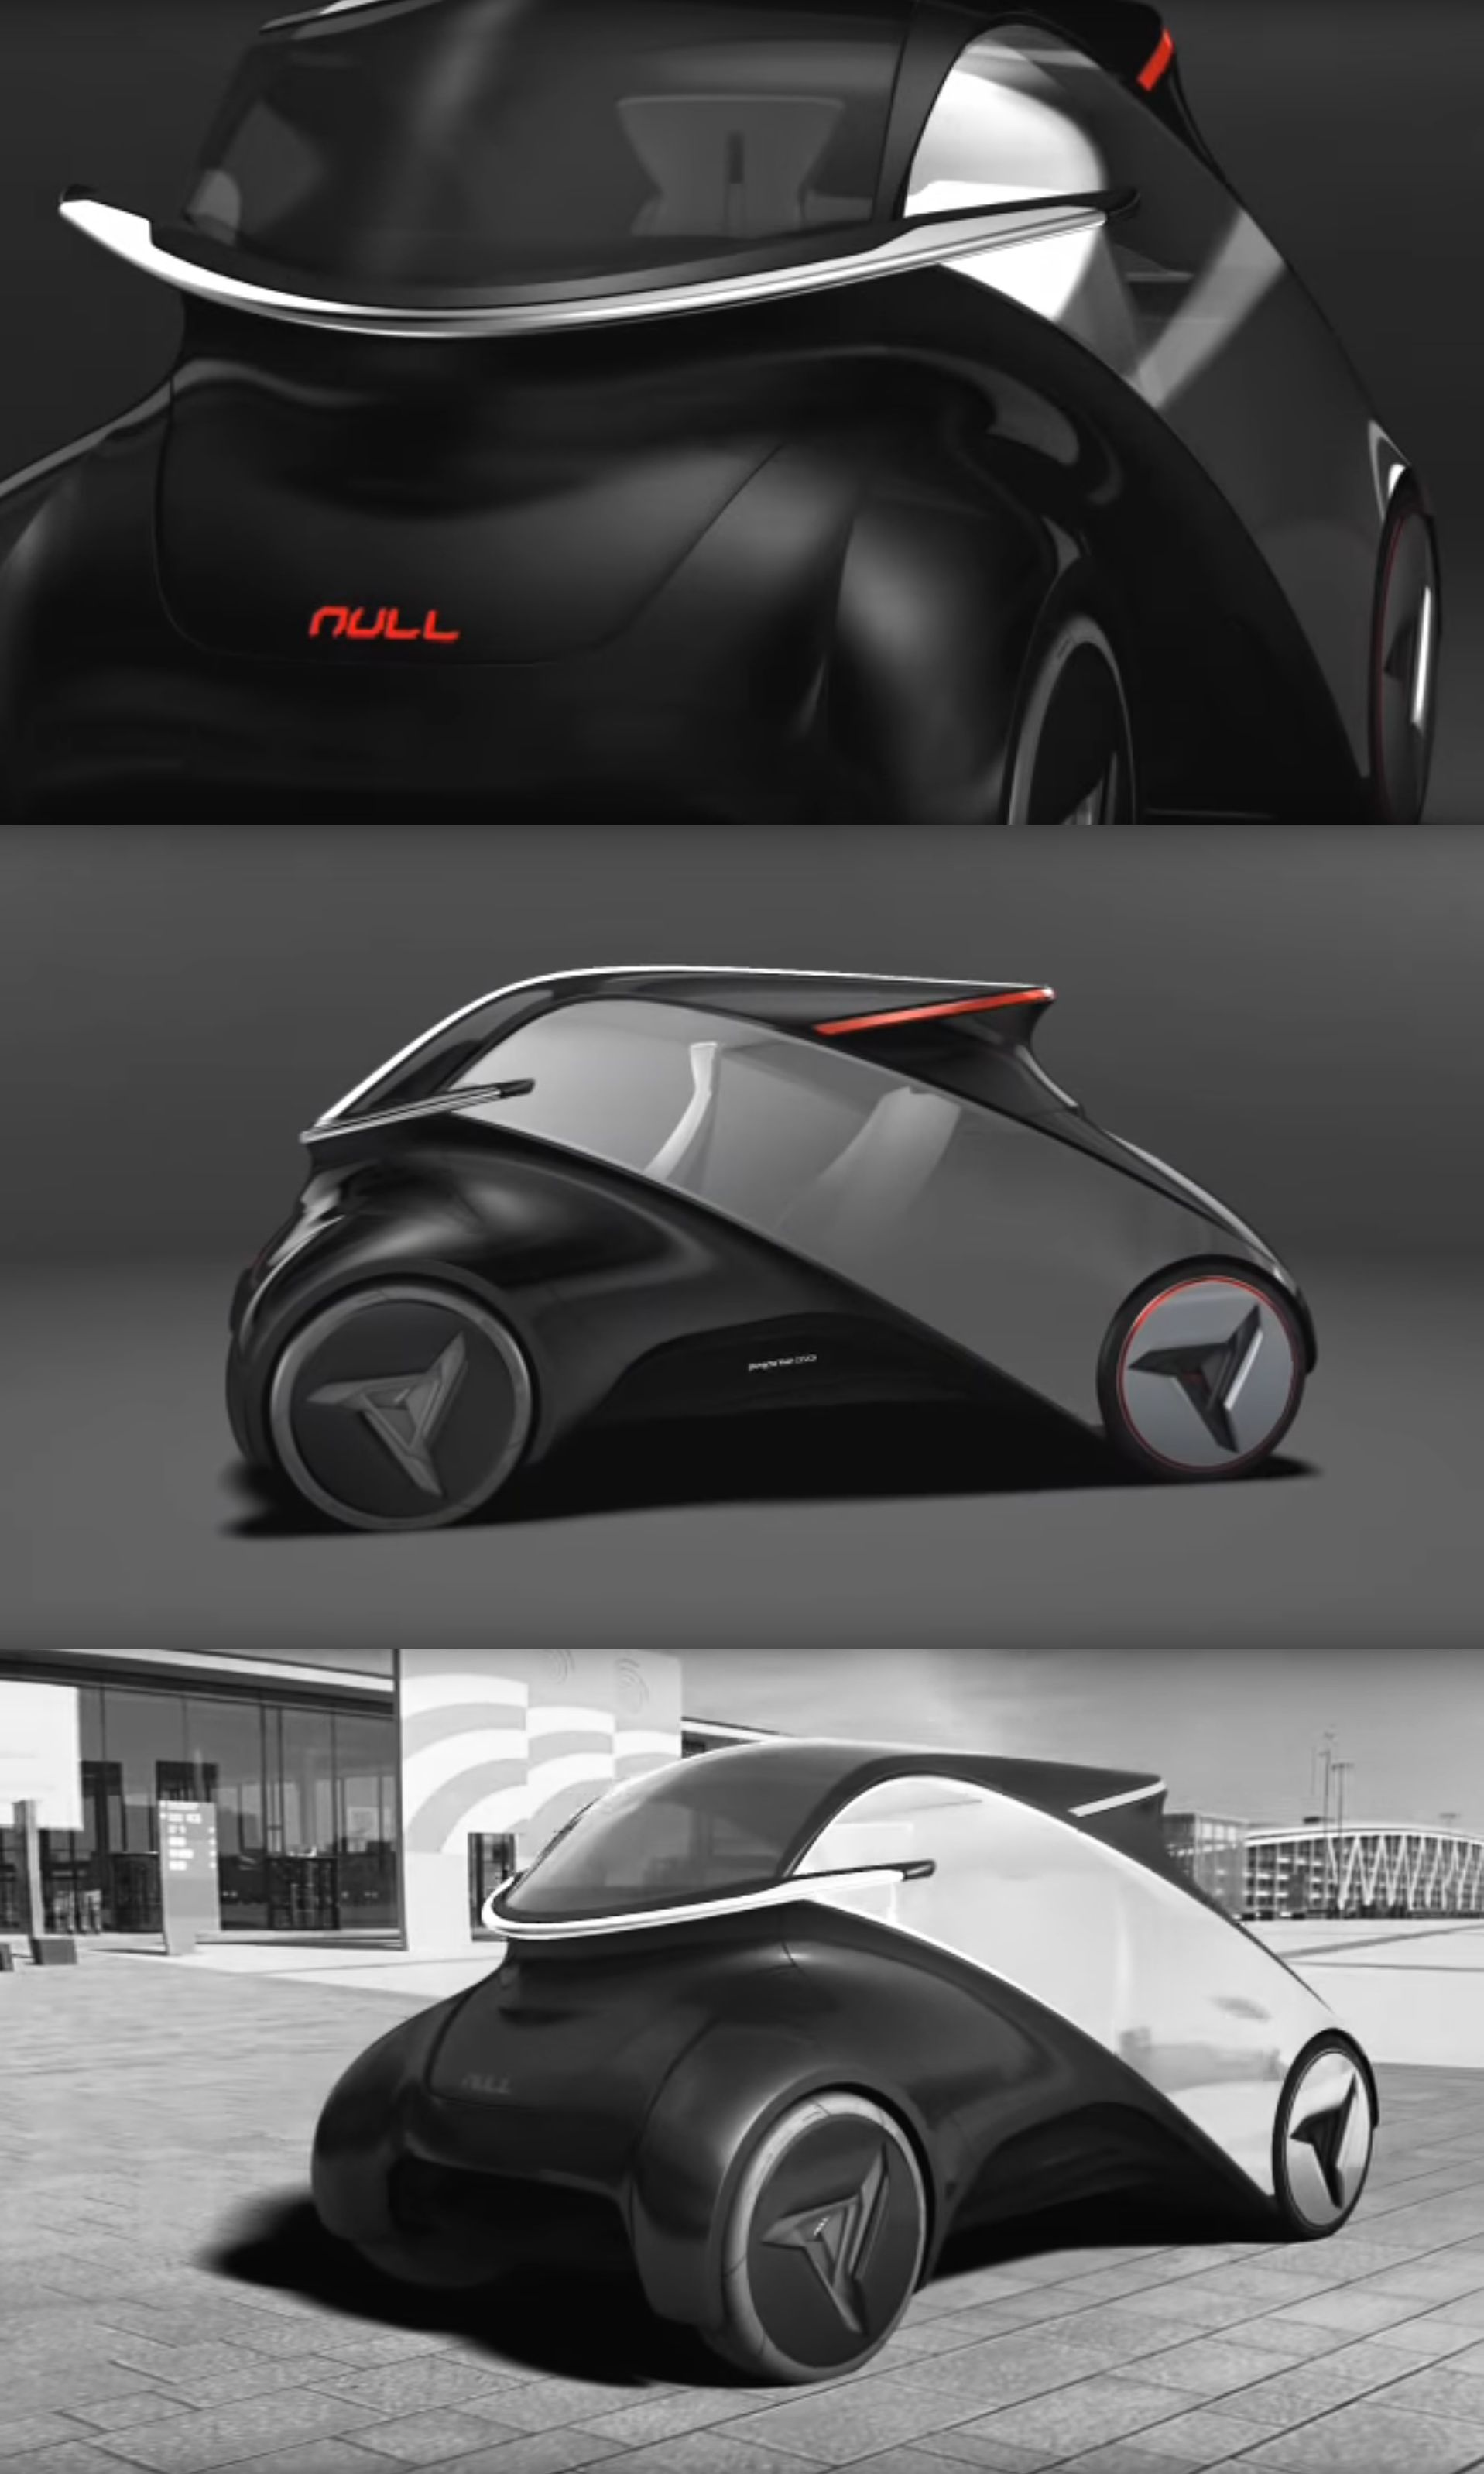 Pin By Moses Hammond On Cars And Motorcycles Futuristic Cars